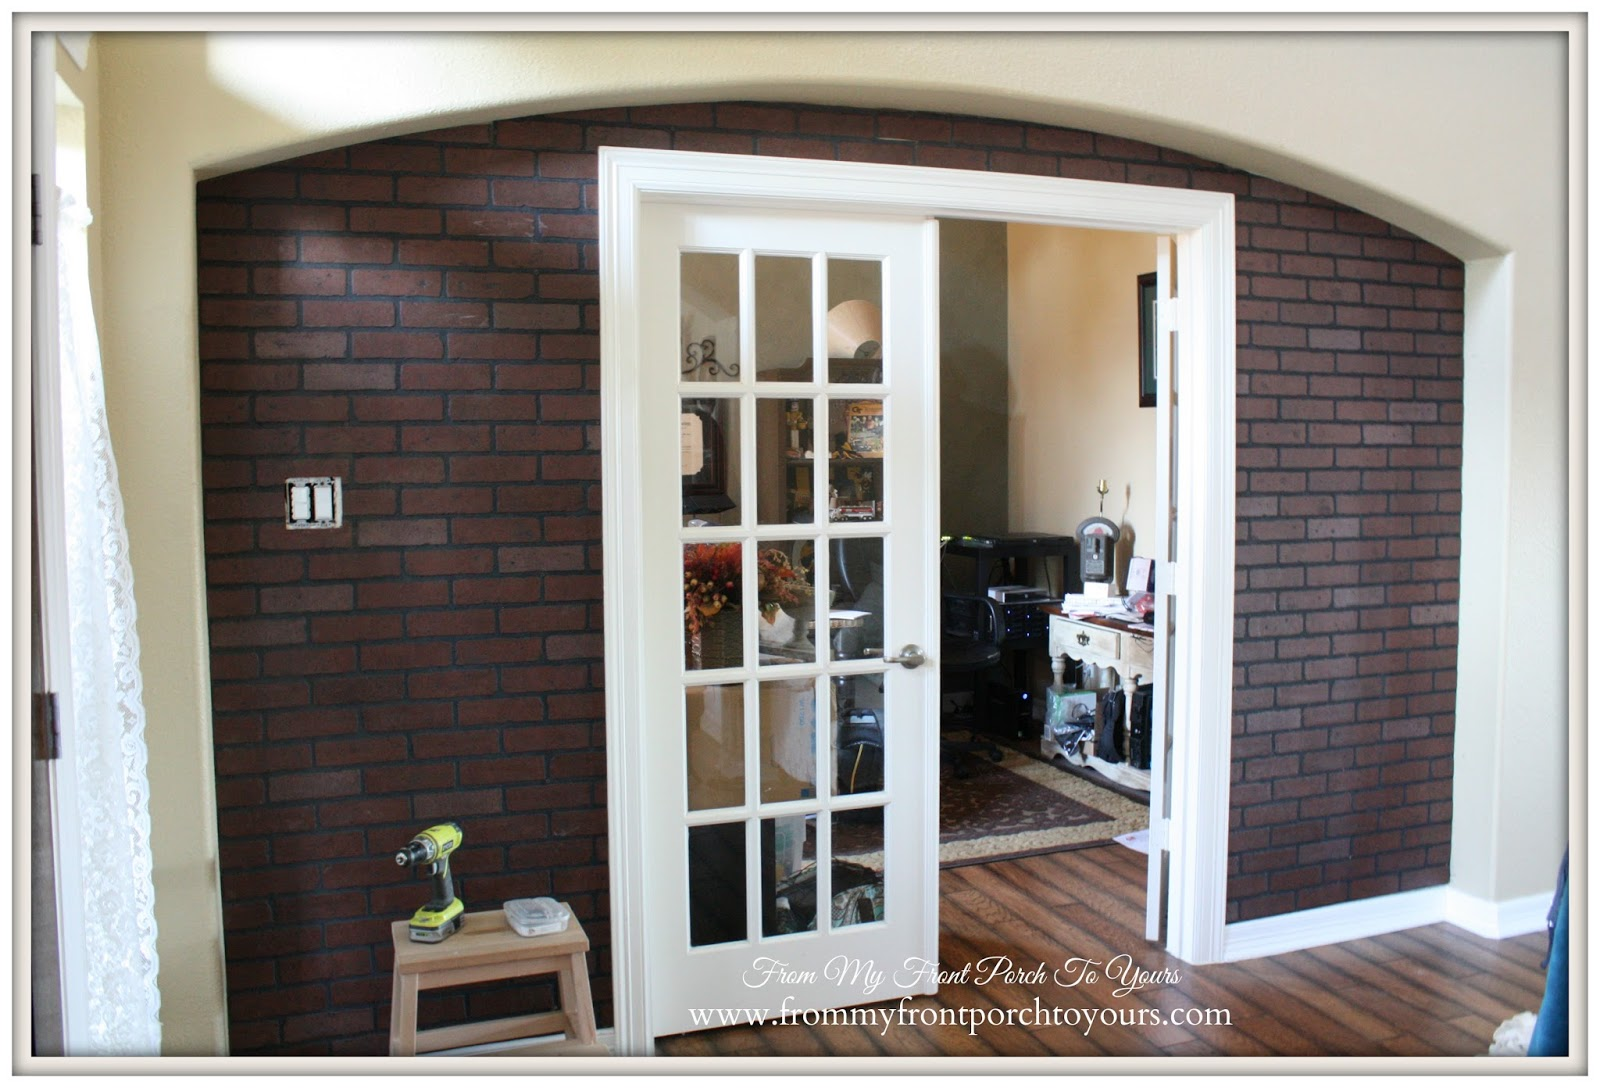 Lowes Faux Brick Wall Panels-DIY Faux Brick Wall- From My Front Porch To Yours